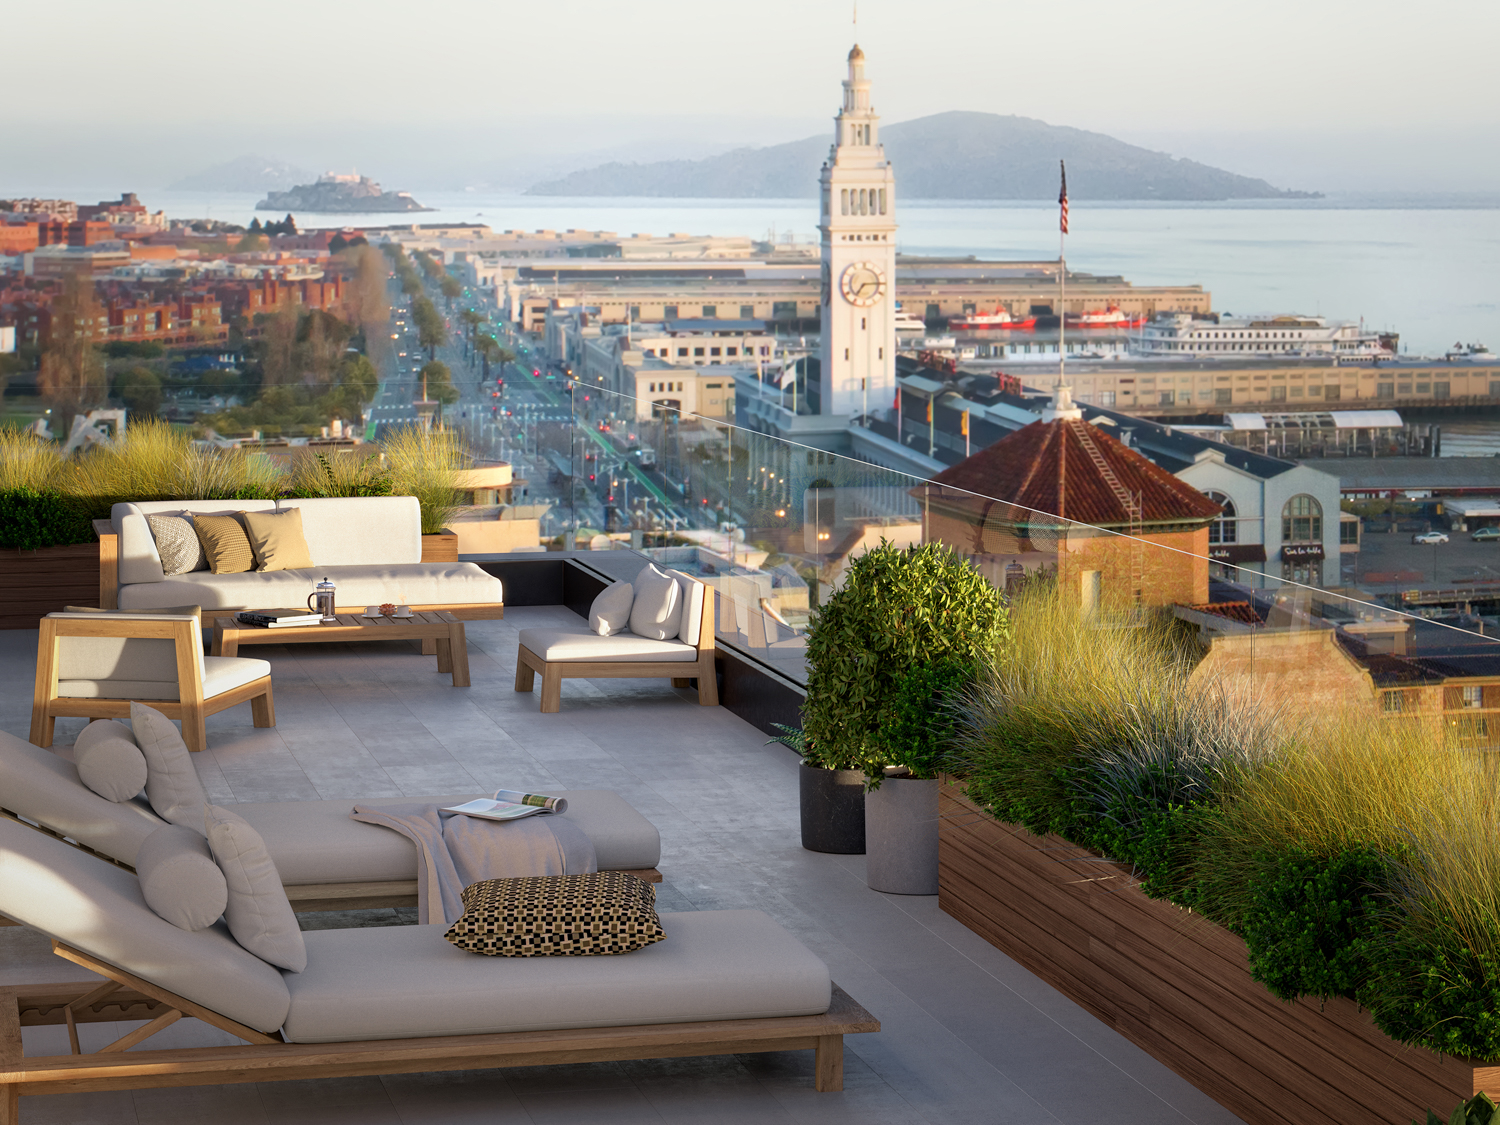 One Steuart Lane with Ferry Building in the background, rendering by Binyan Studios, Creative Direction by Allis